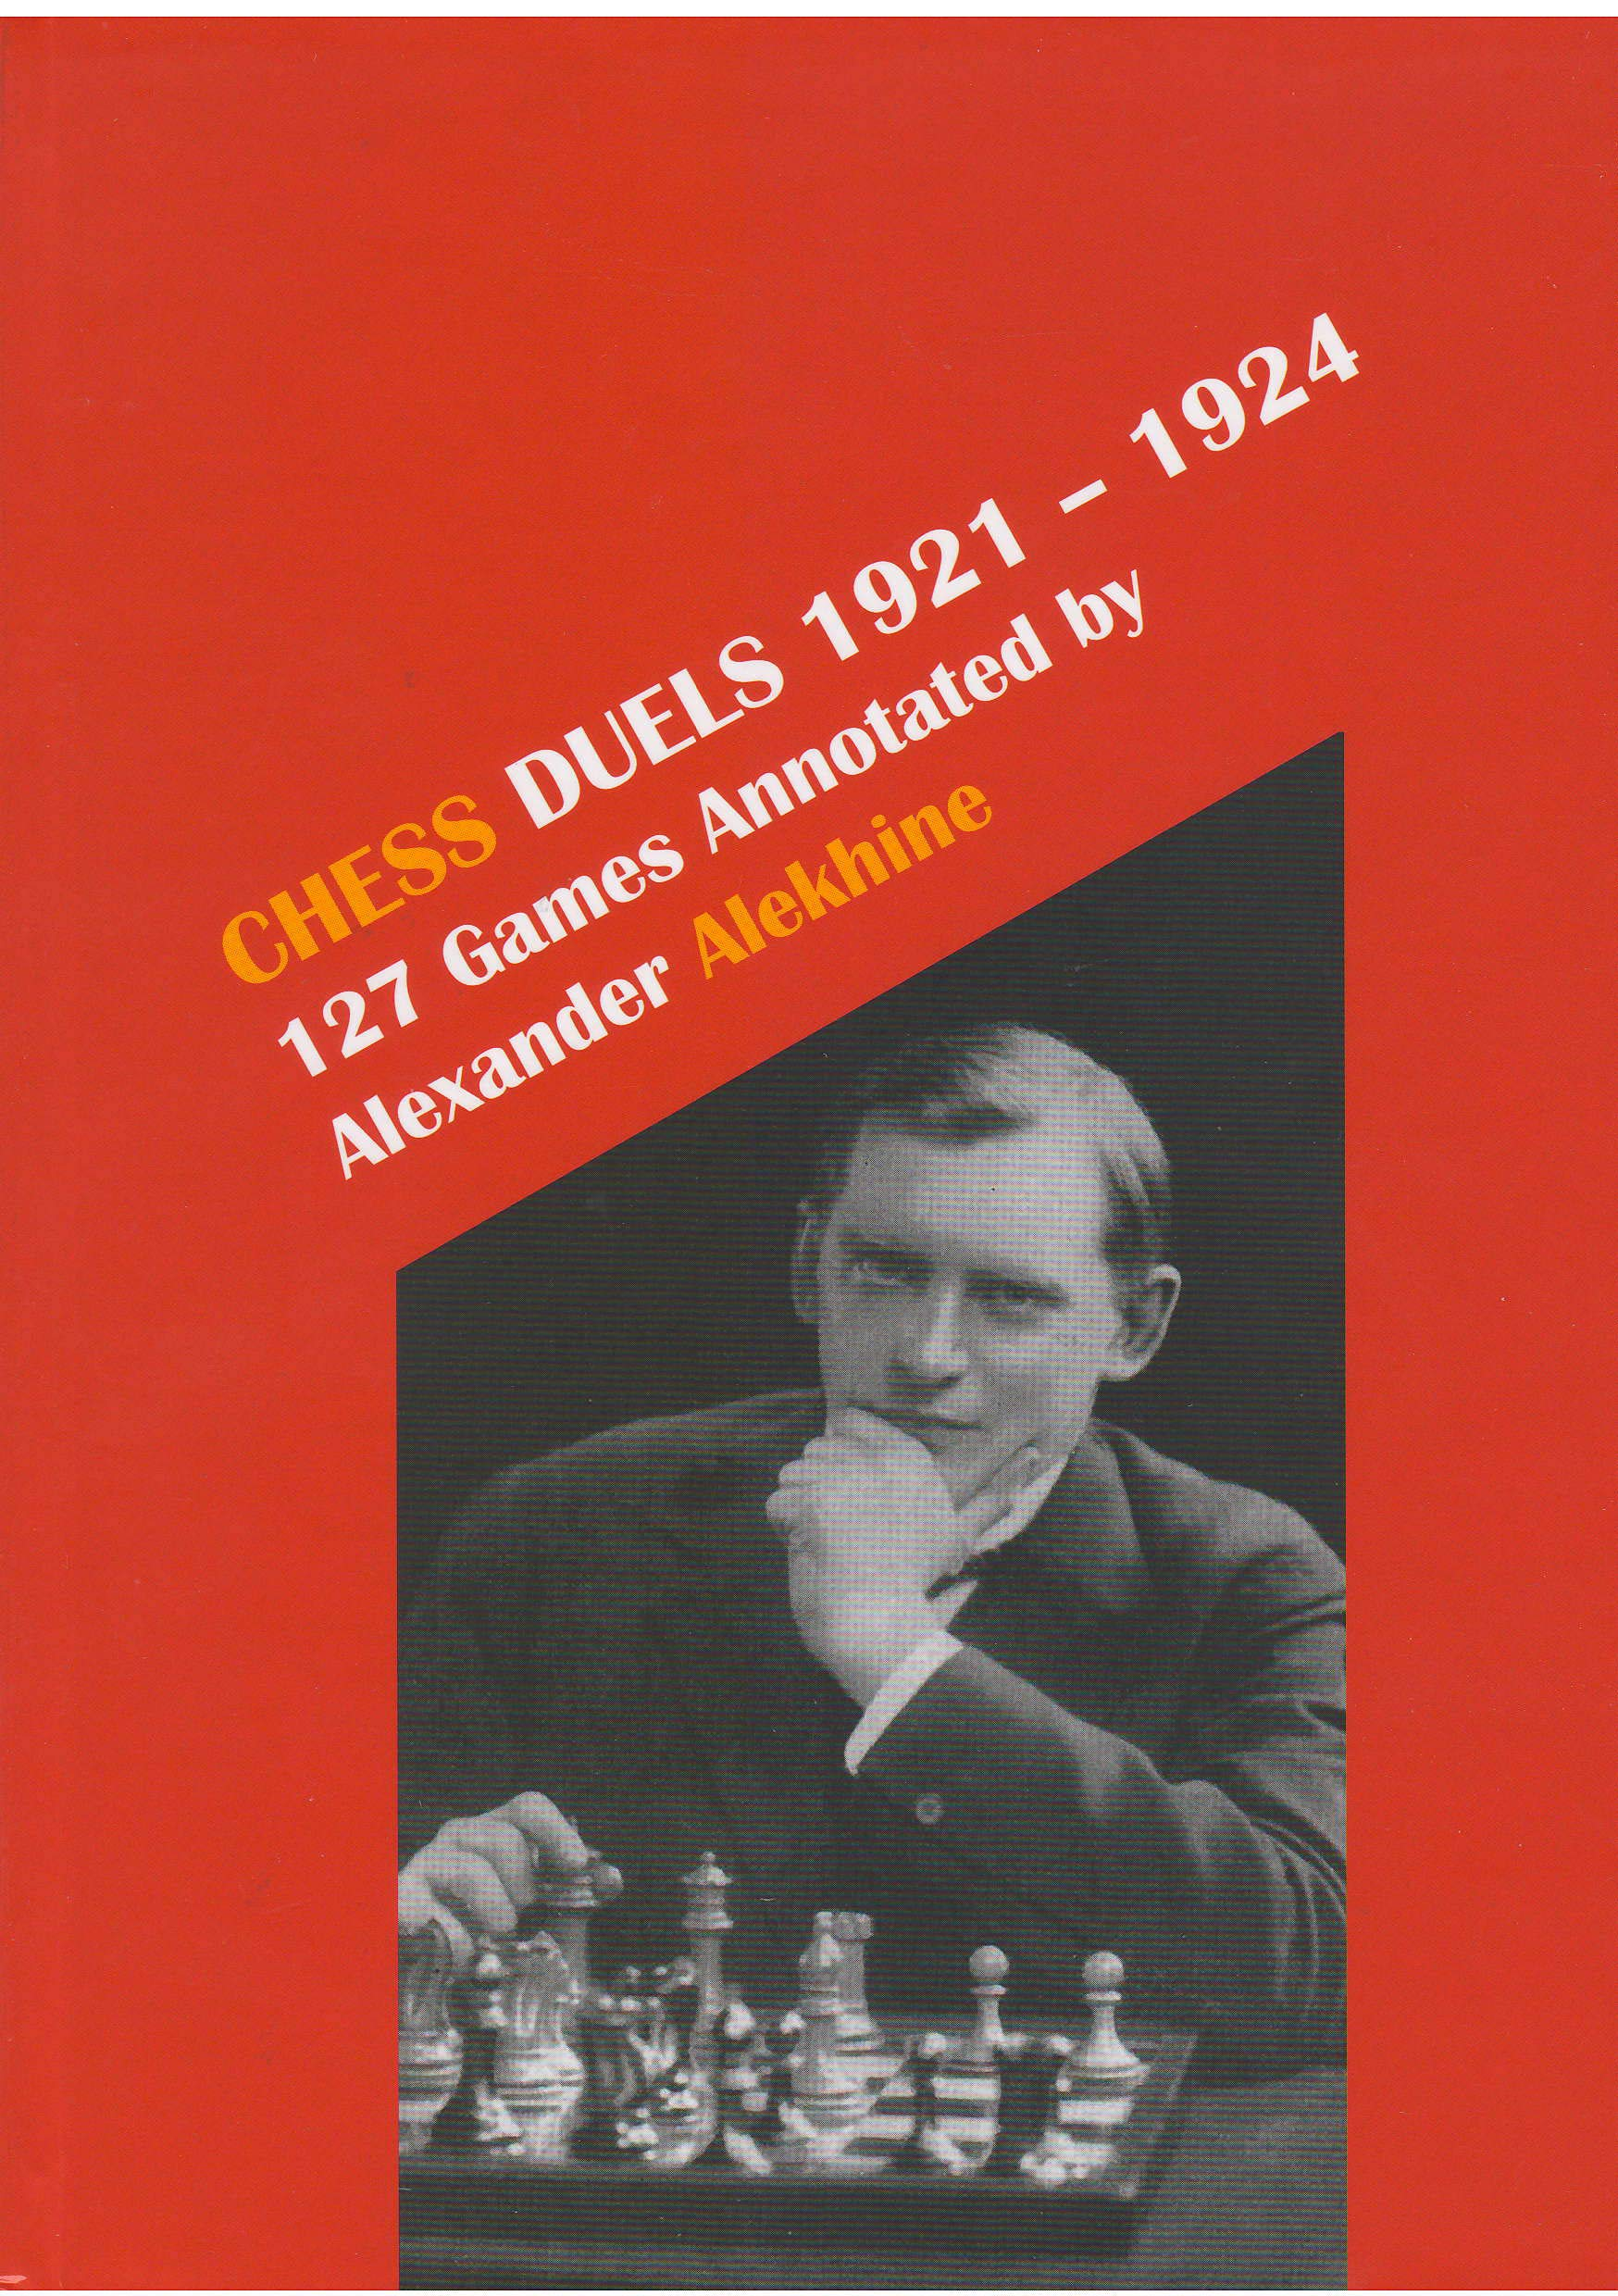 Chess Duels 1921 - 1924 : 127 Games Annotated by Alexander Alekhine, Vlastimil Fiala & Ken Neat, Moravian Chess, 2020, ISBN 978-80-7189-021-8